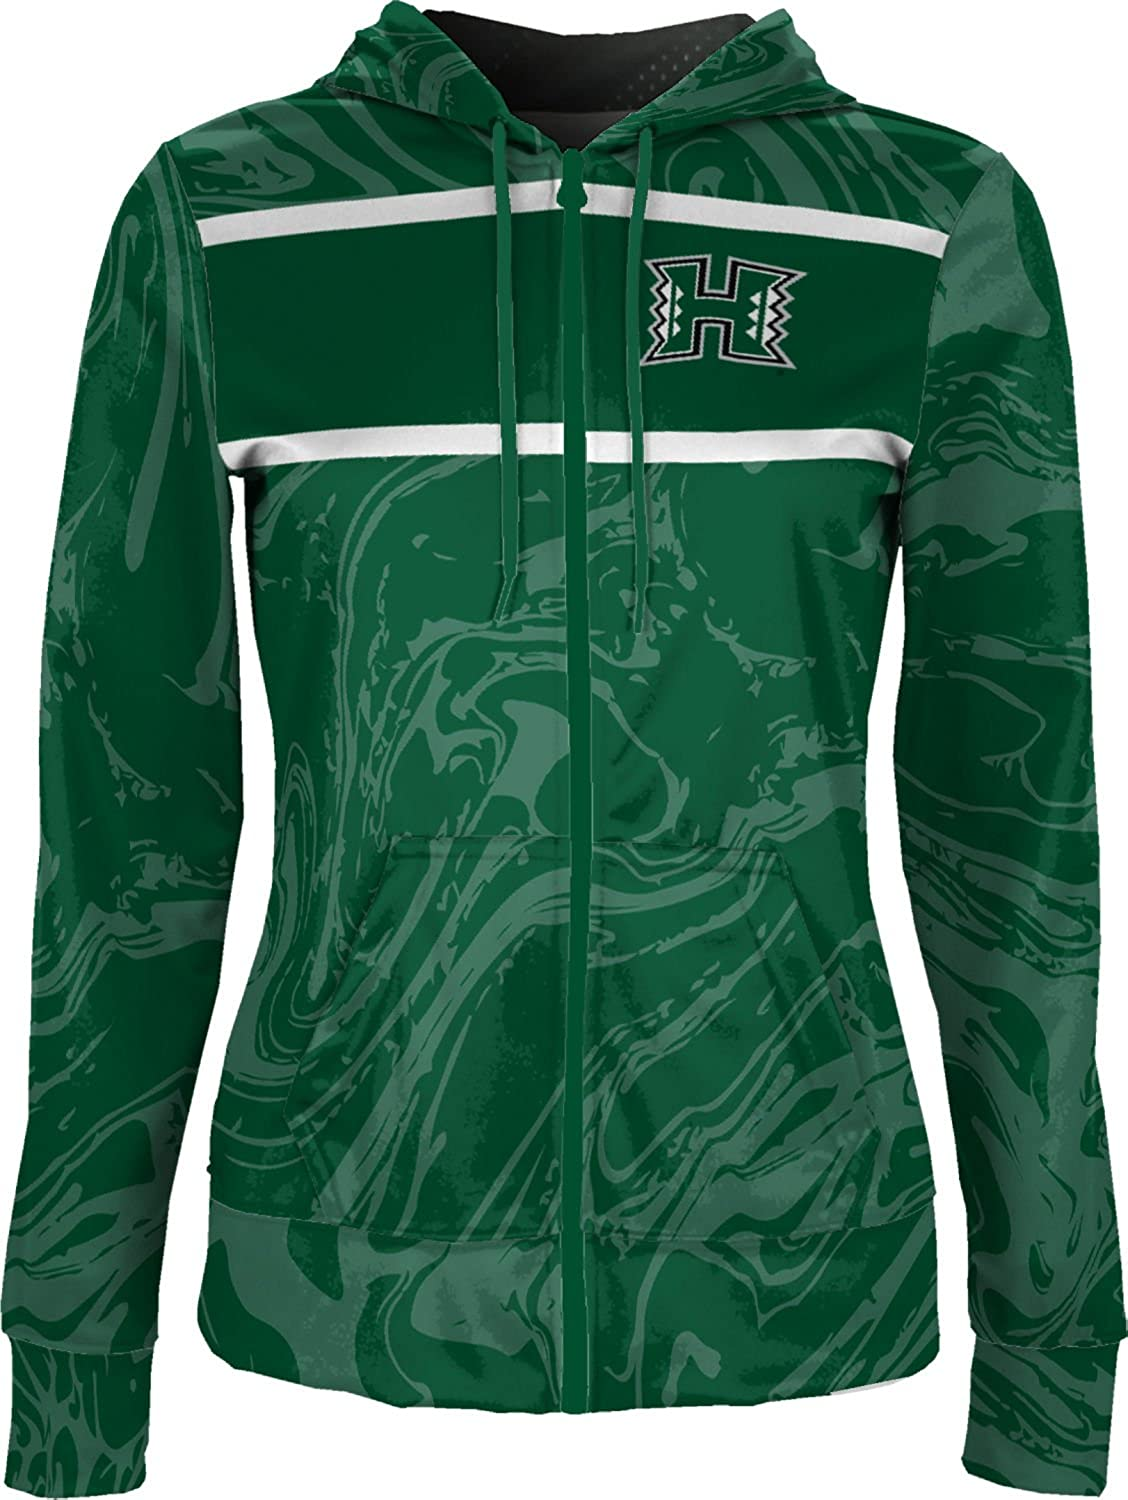 ProSphere University of Hawaii Girls Zipper Hoodie Ripple School Spirit Sweatshirt